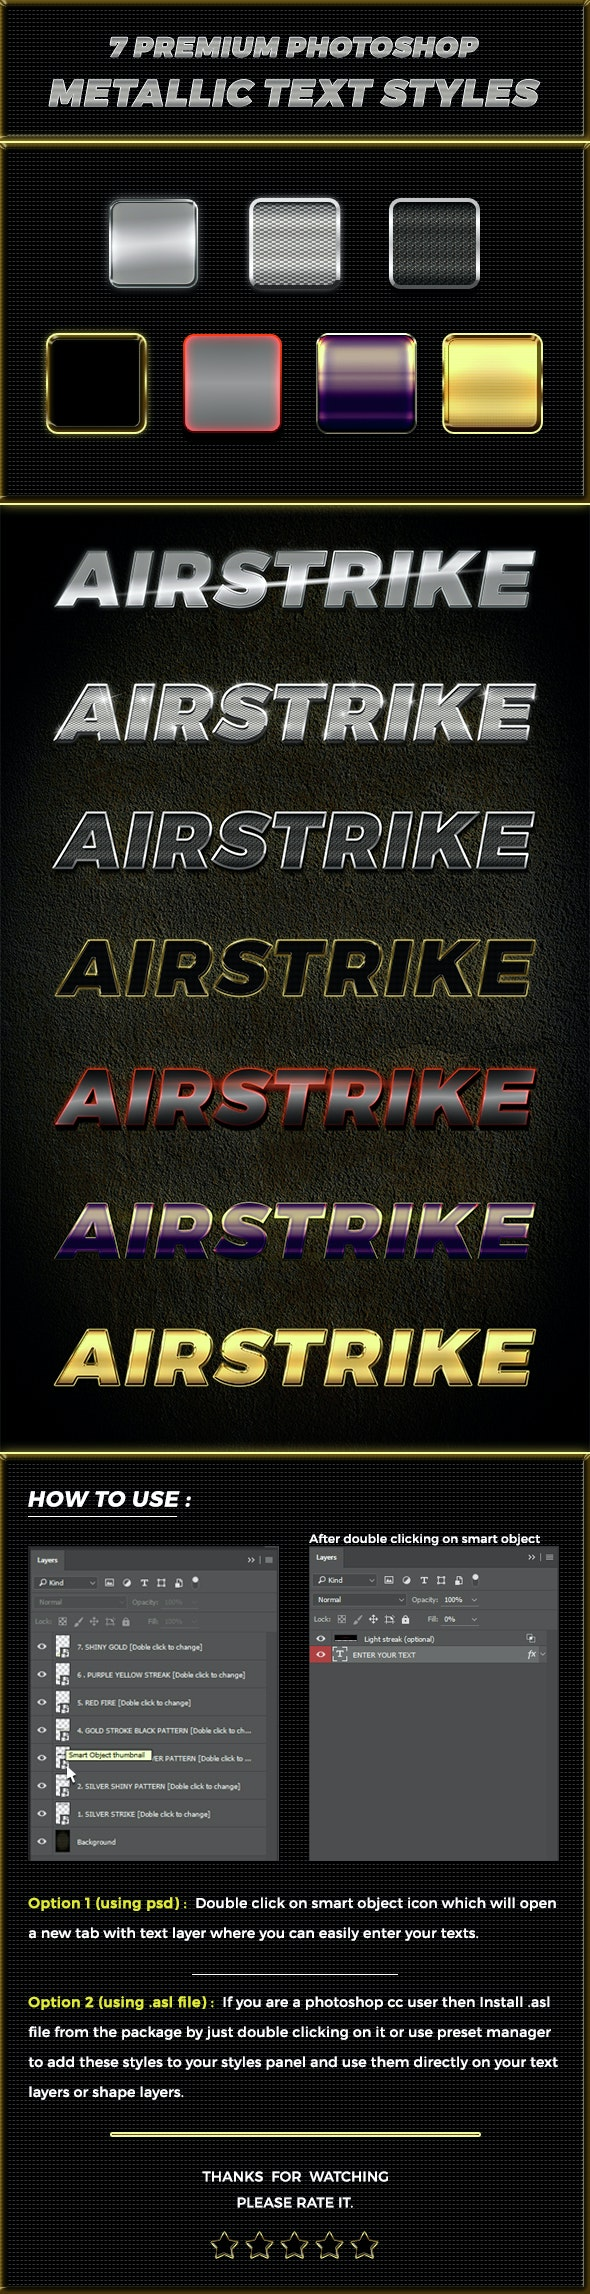 7 Premium Airstrike Photoshop metallic text styles - Text Effects Styles